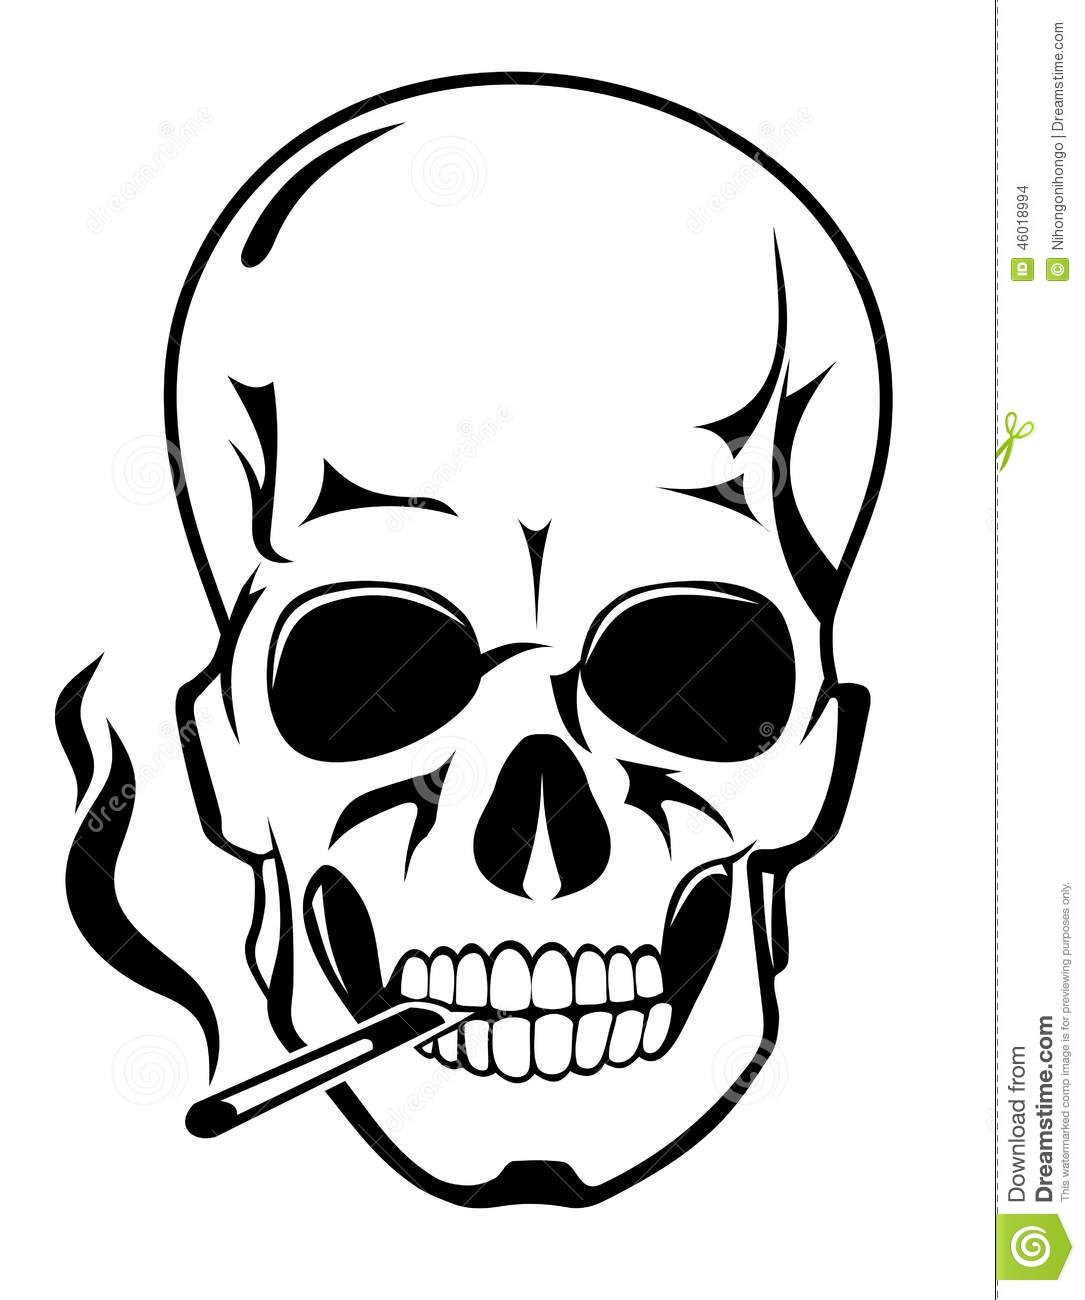 Stock Illustration Skull Danger Smoke Concept Cartoon Style Image46018994 on halloween clip art